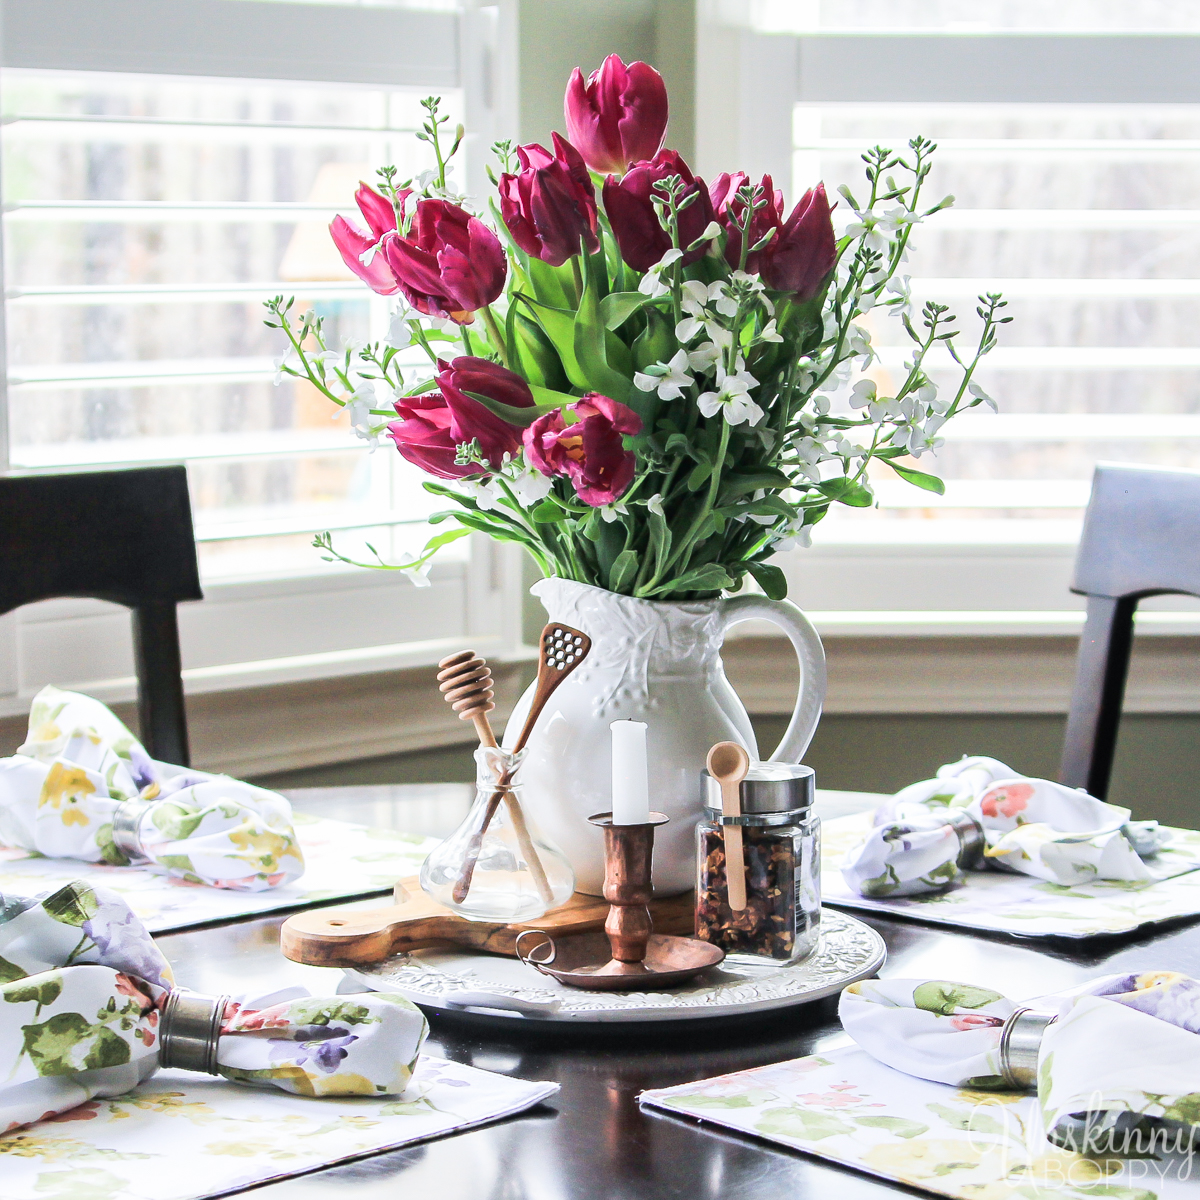 Spring Farmhouse Tours. Find some new floral placemats and napkins to lighten up your dark kitchen table. Add tulips in a carafe for the perfect spring centerpiece.